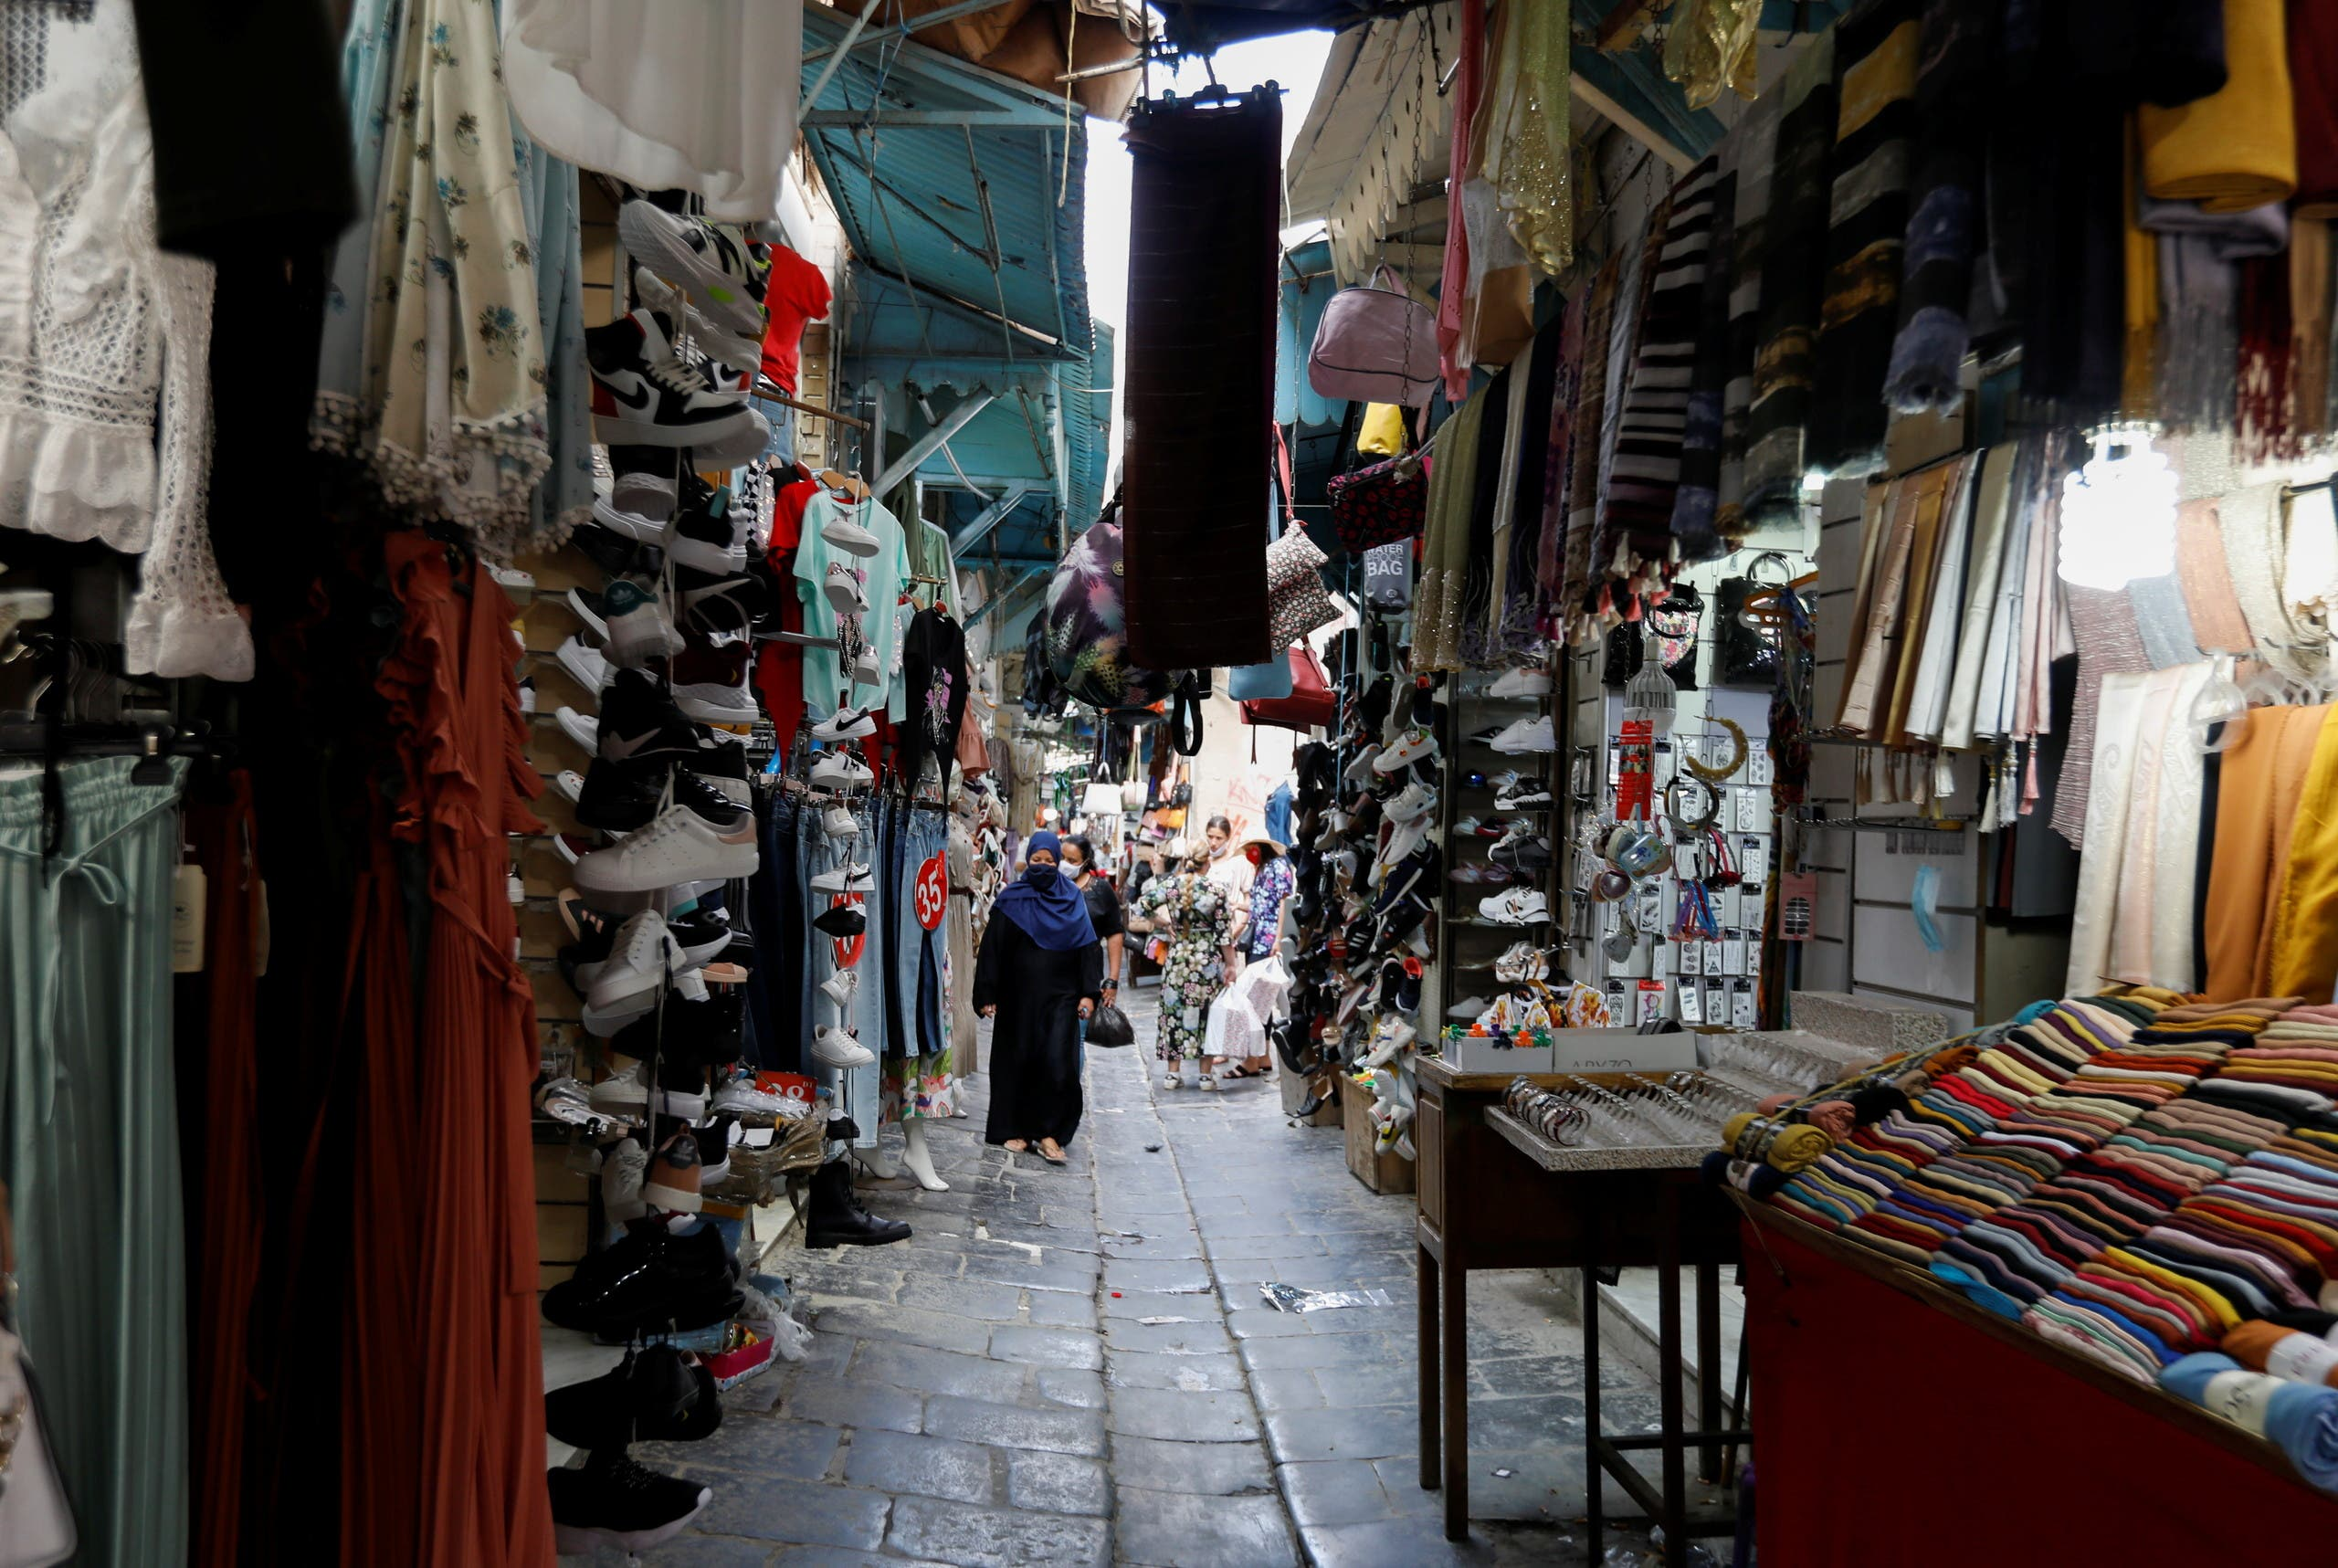 People walk past shops in the Medina, in the old city of Tunis, Tunisia, July 27, 2021. (Reuters)